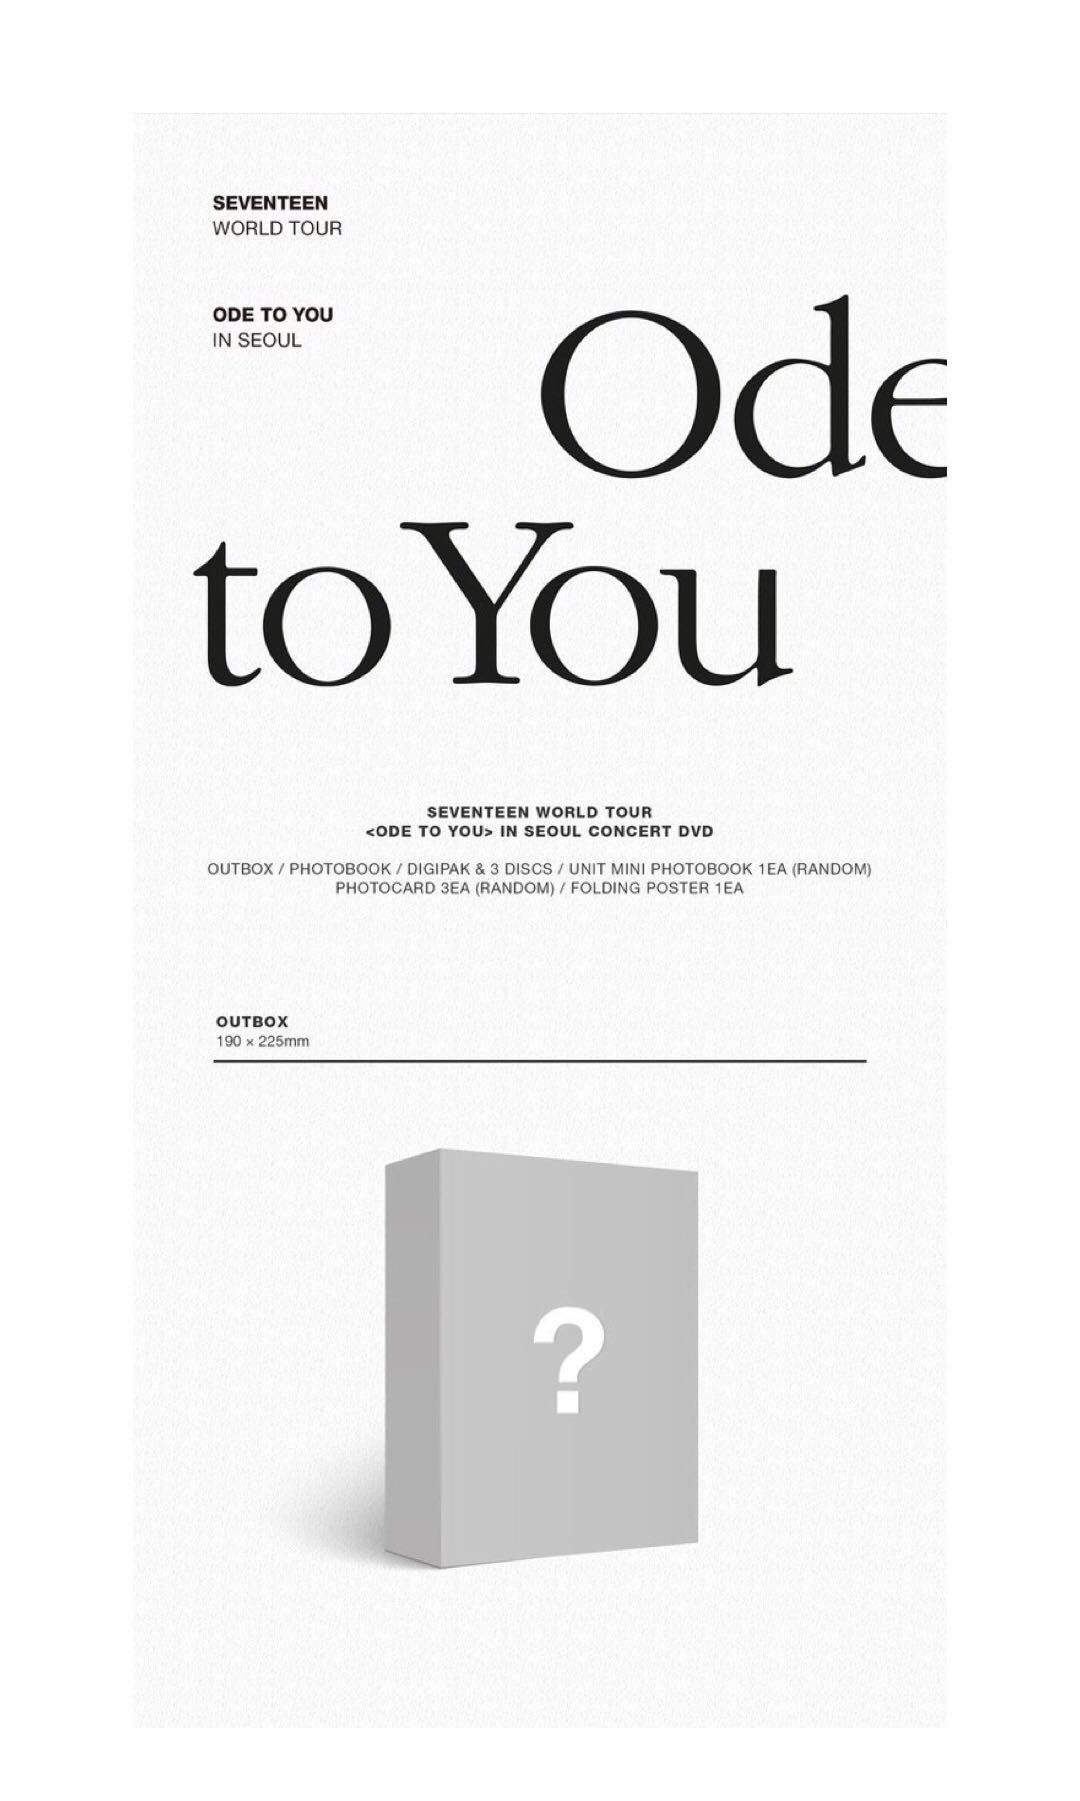 [LOOSE ITEMS] SEVENTEEN WORLD TOUR ODE TO YOU IN SEOUL DVD